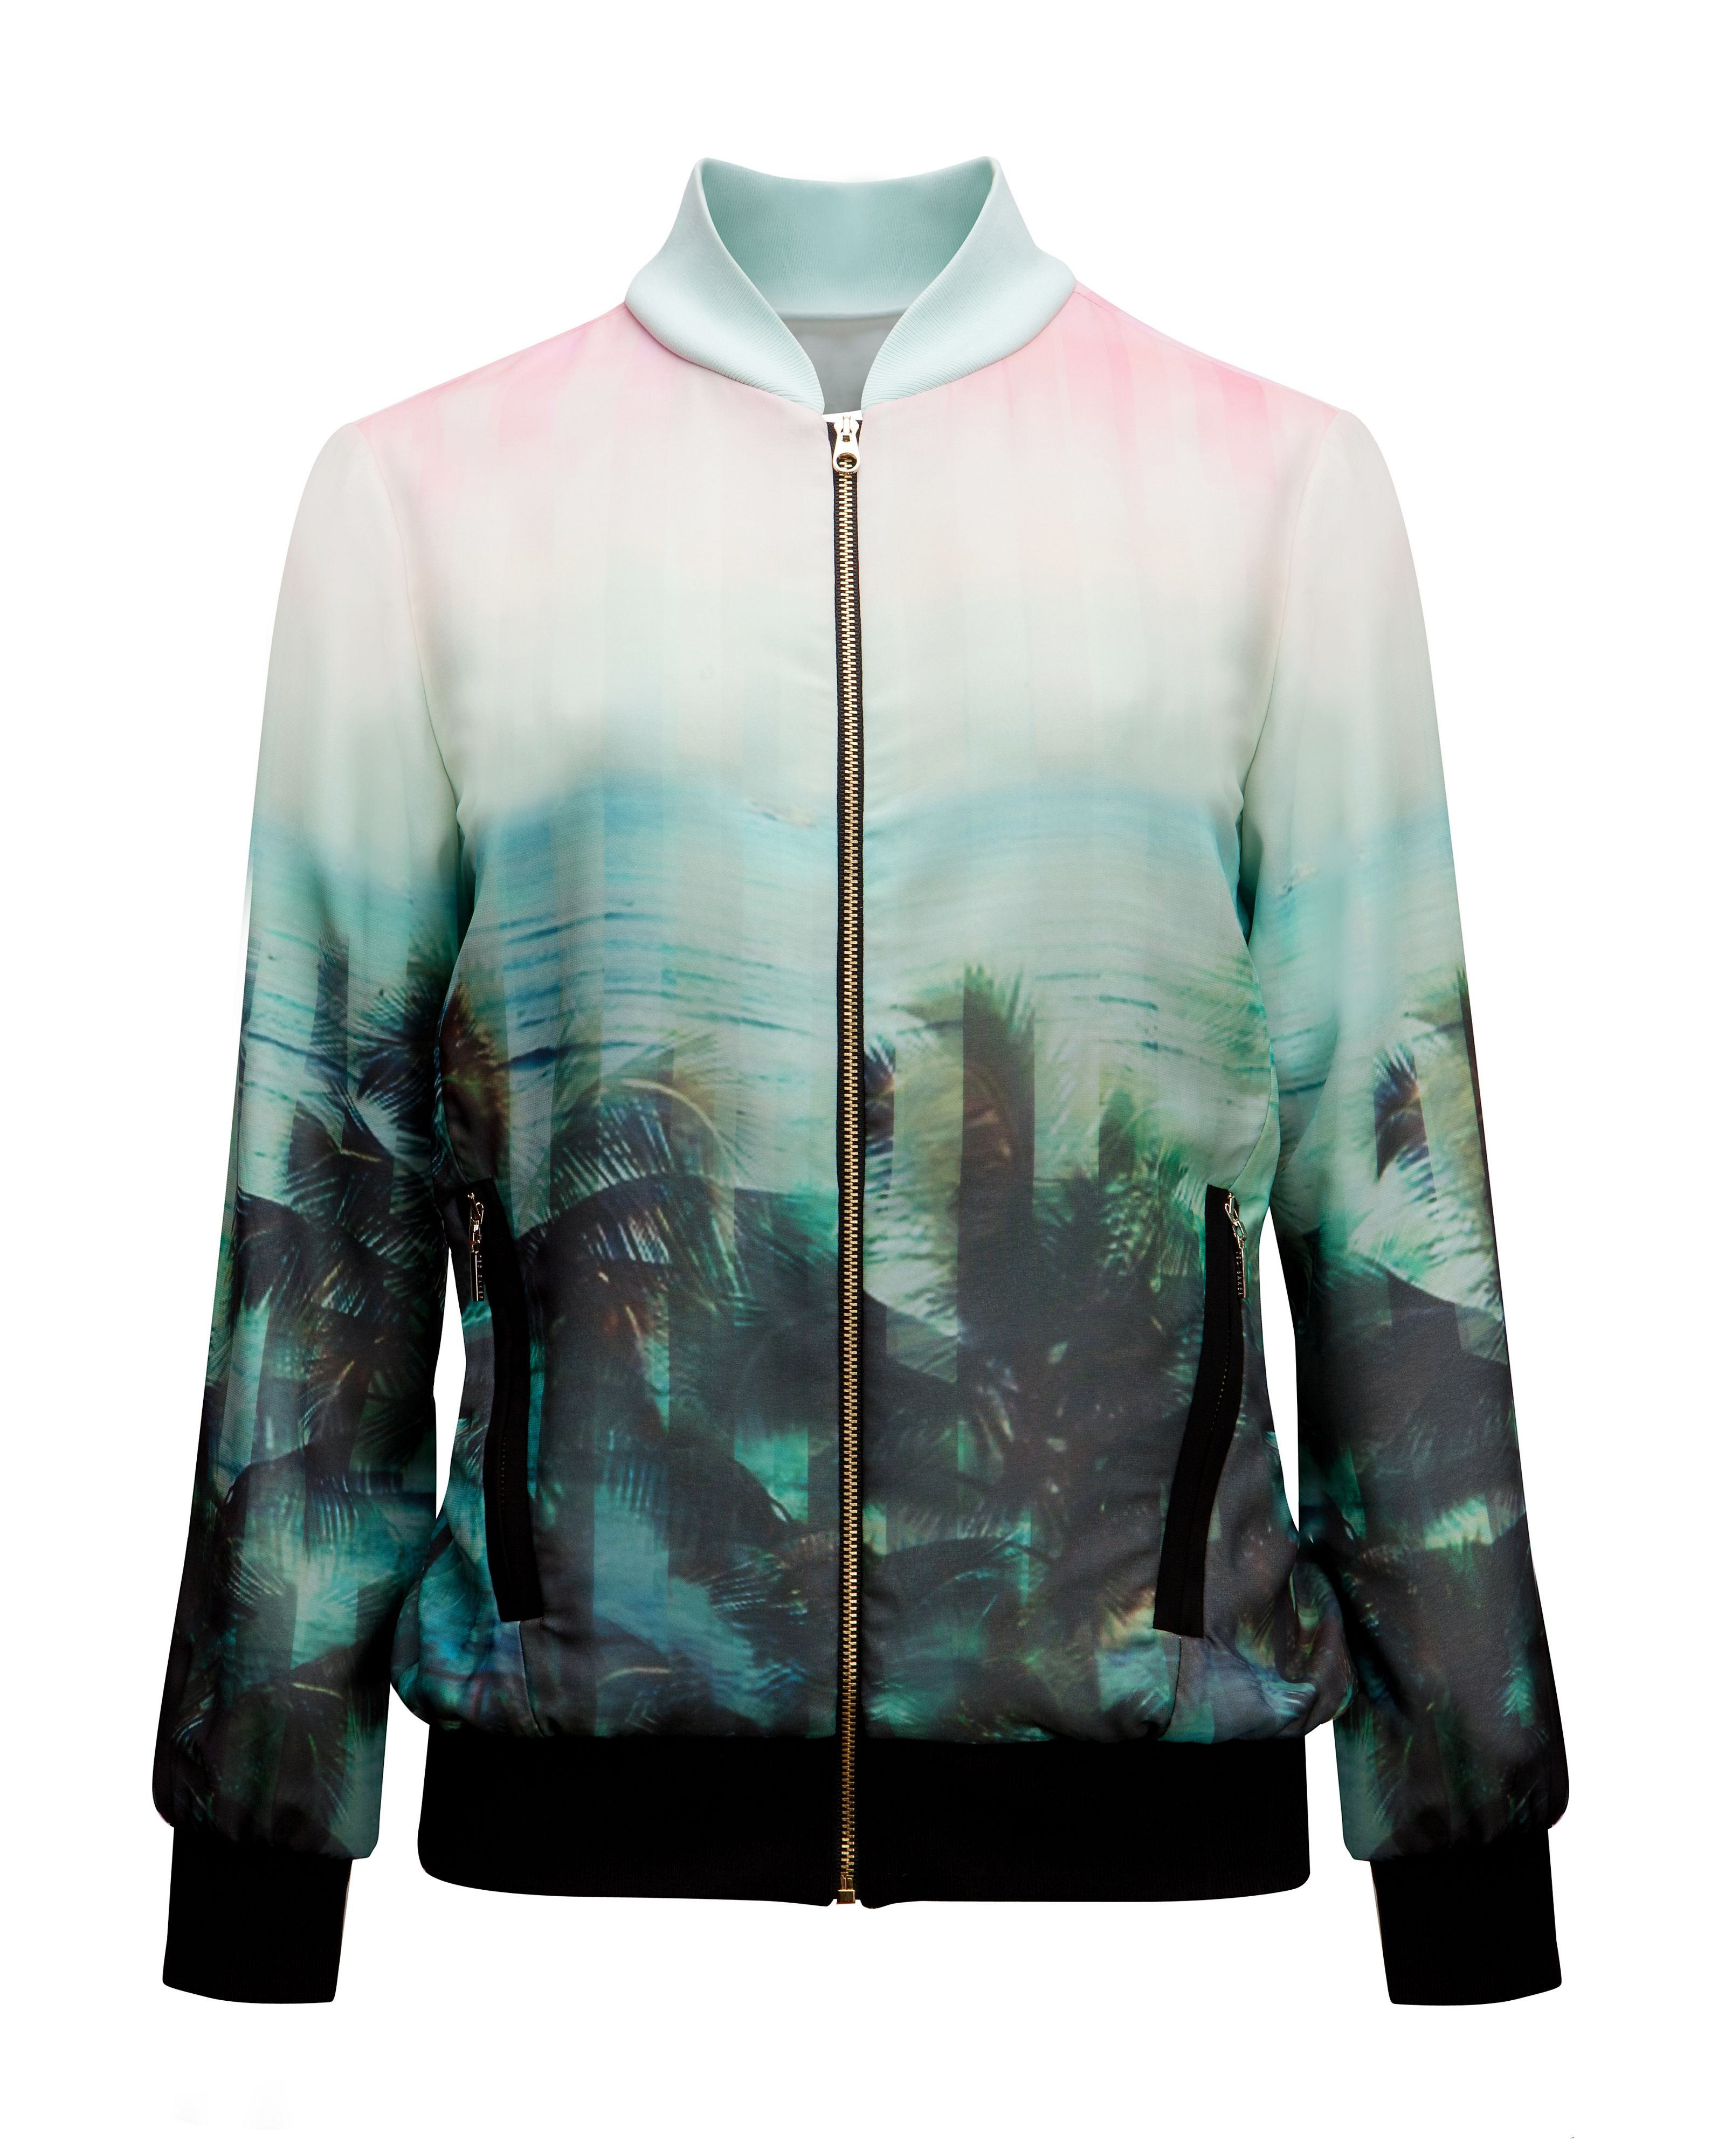 Boyanna palm tree paradise jacket